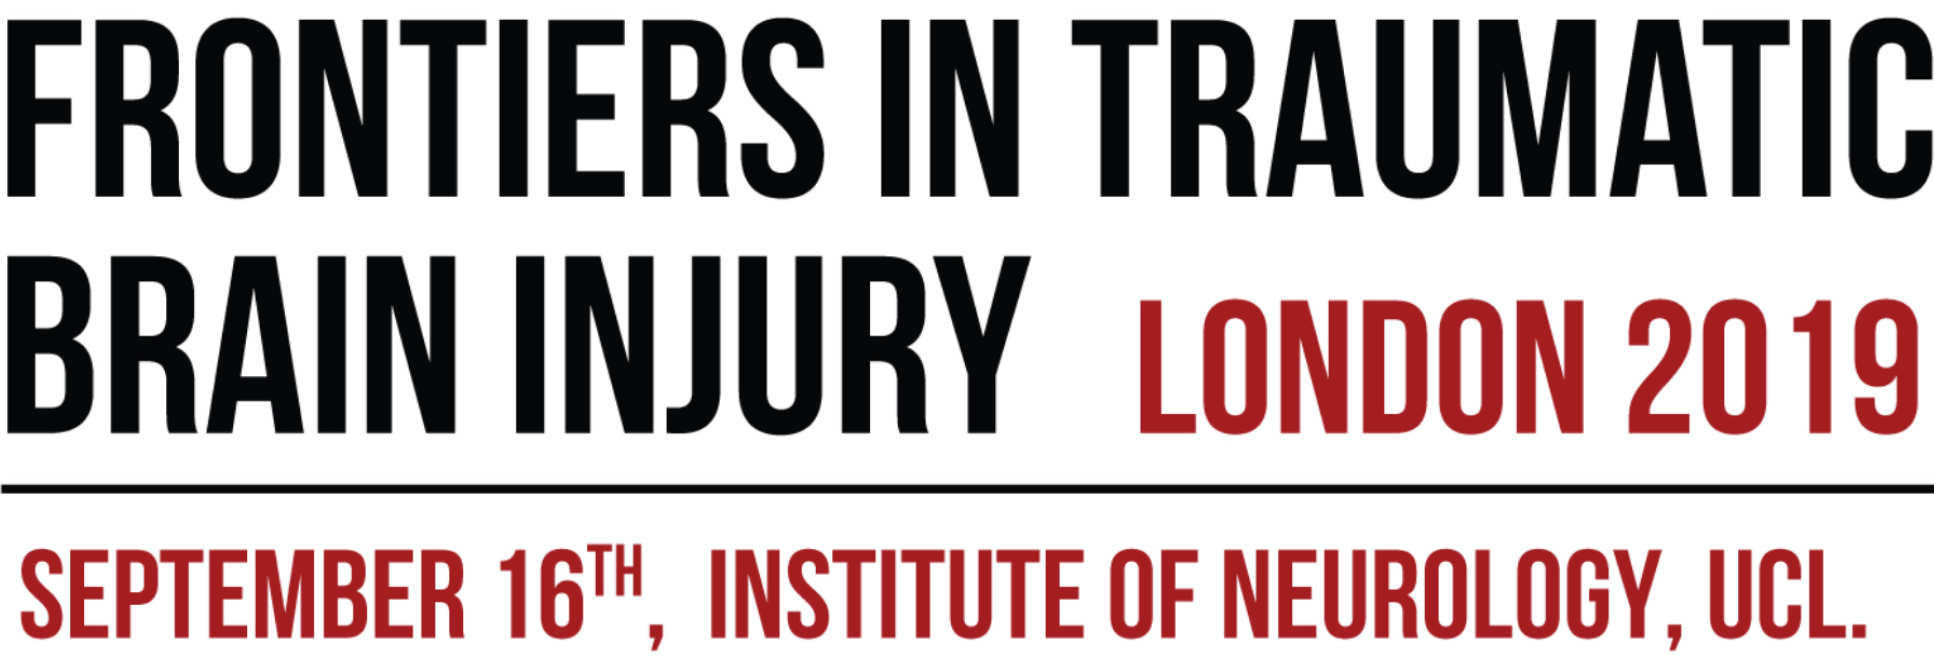 Frontiers in TBI, London Sept 16th 2019, ION at UCL